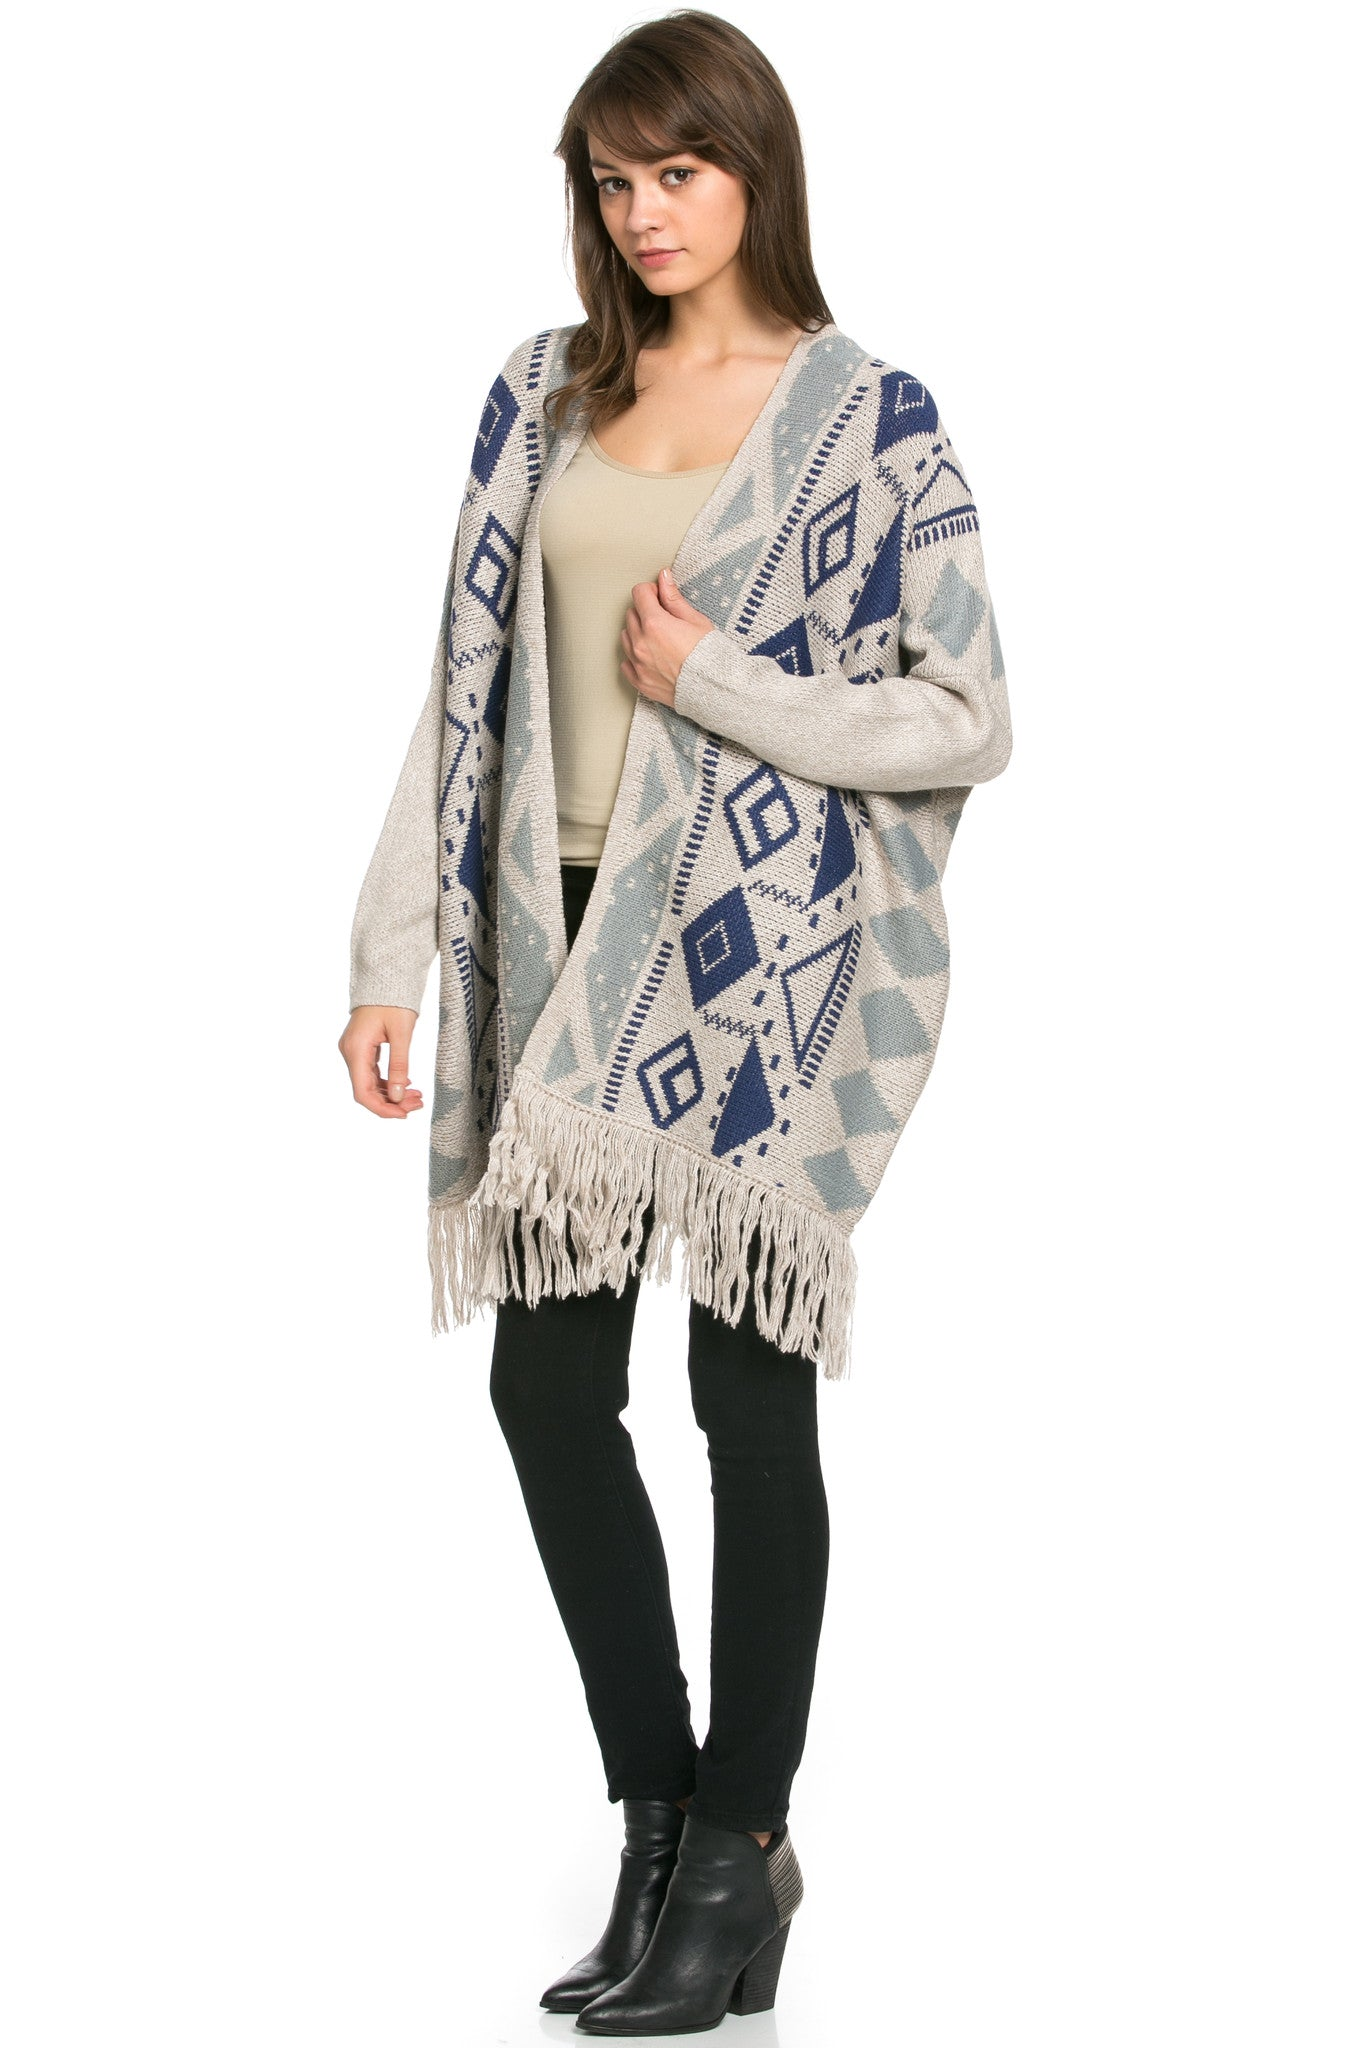 Aztec and Fringes Cardigan Taupe - Jacket - My Yuccie - 5